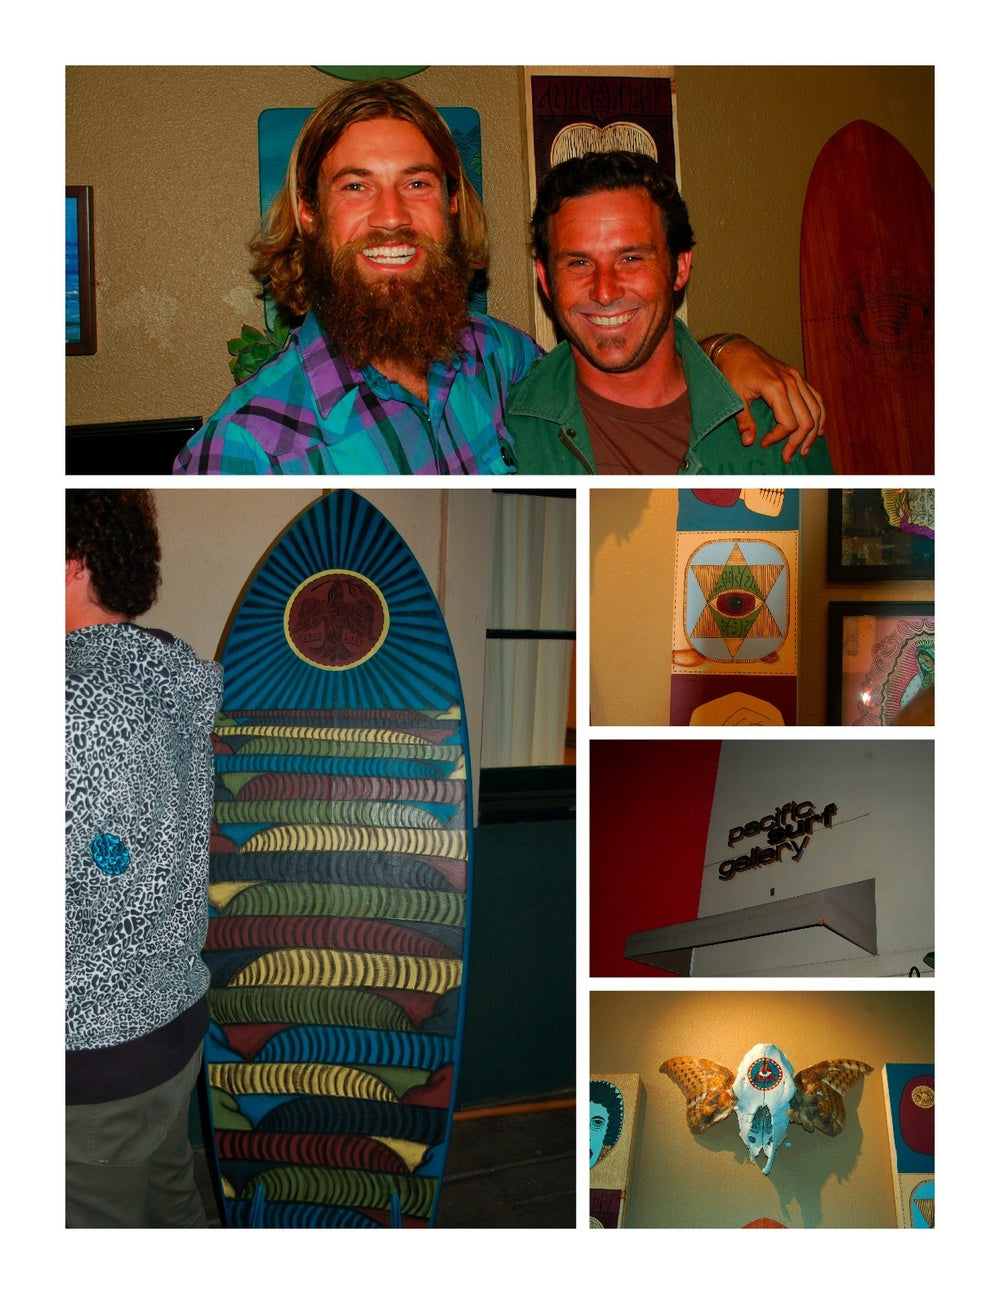 Chris Del Moro Hosts One Awesome Art Show